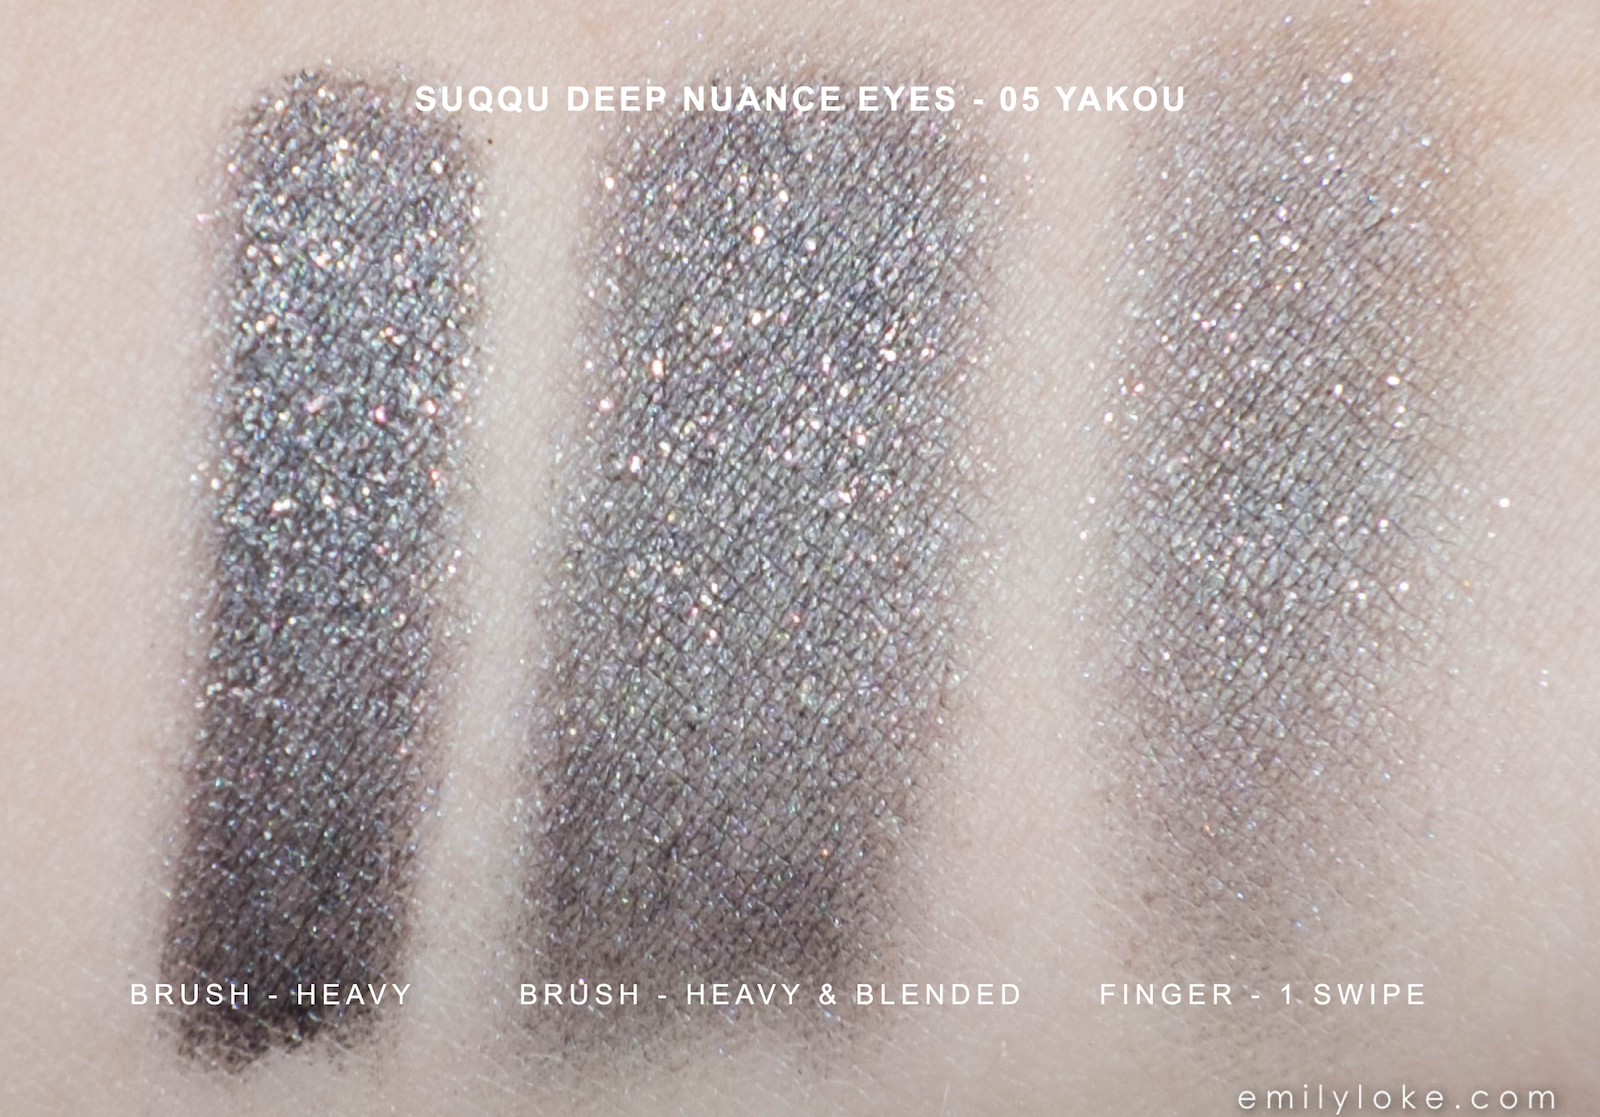 Suqqu Deep Nuance Eyes Yakou swatches 1